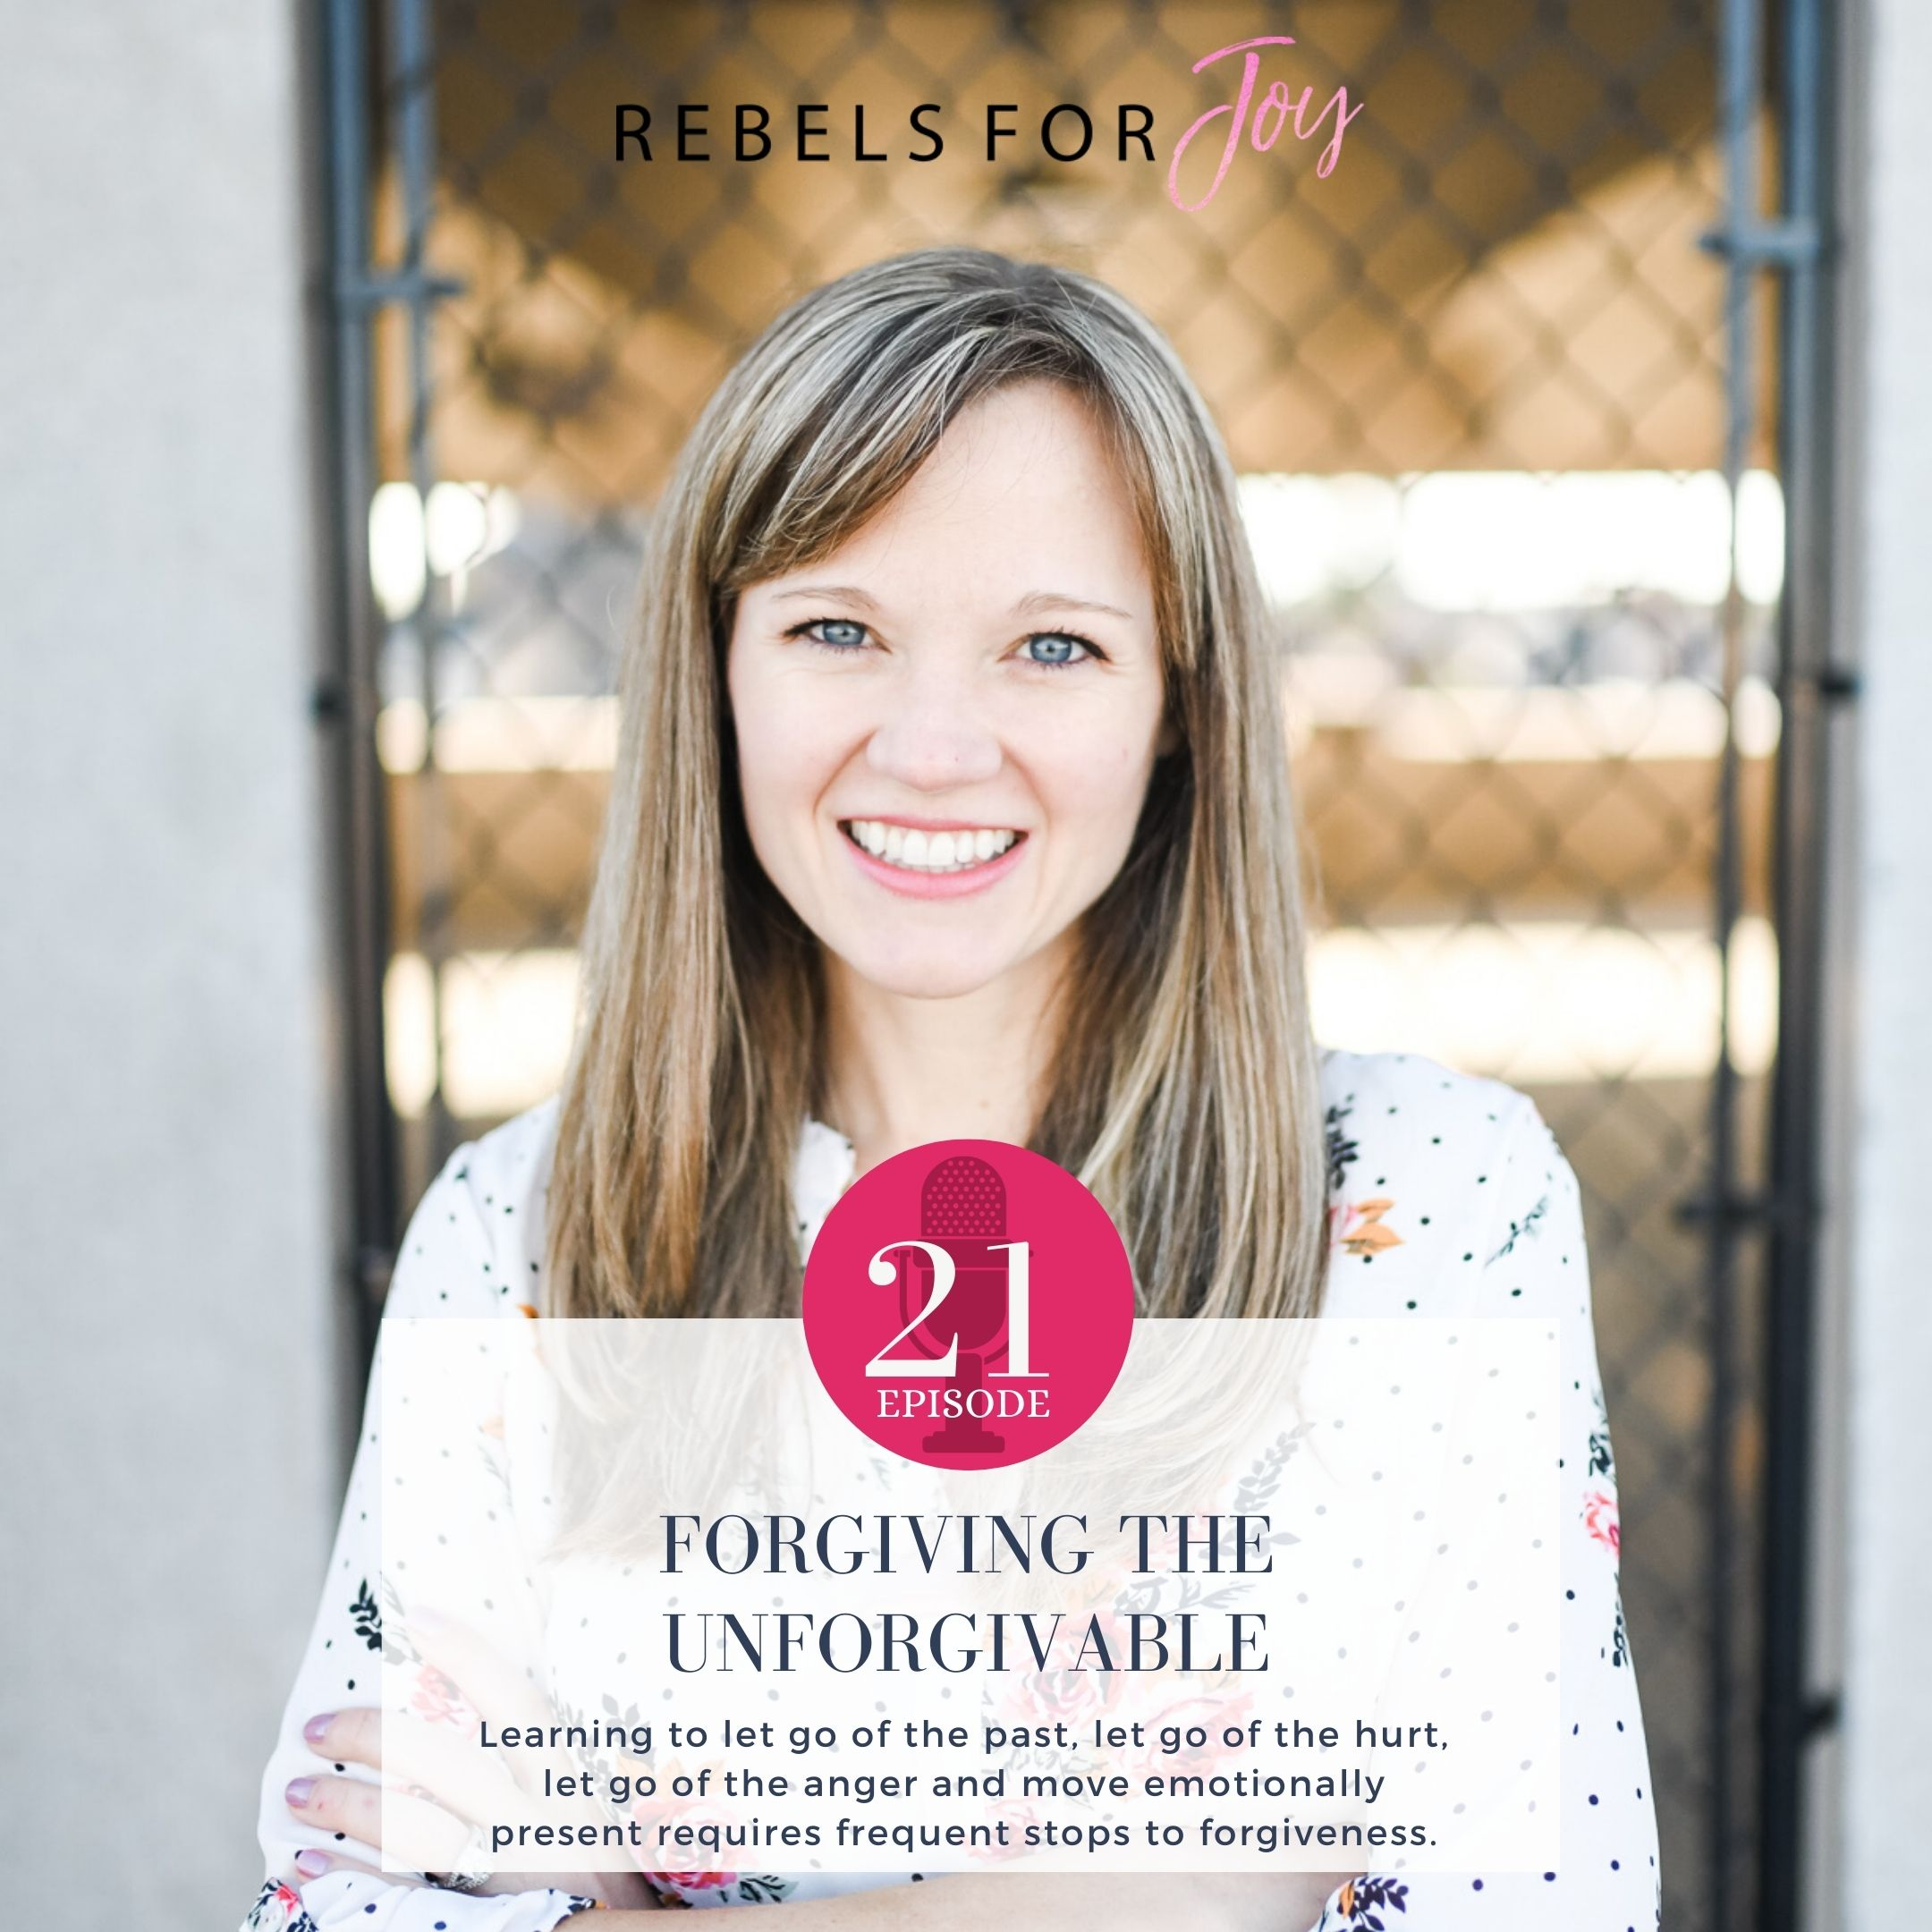 Episode 21: Forgiving the Unforgivable